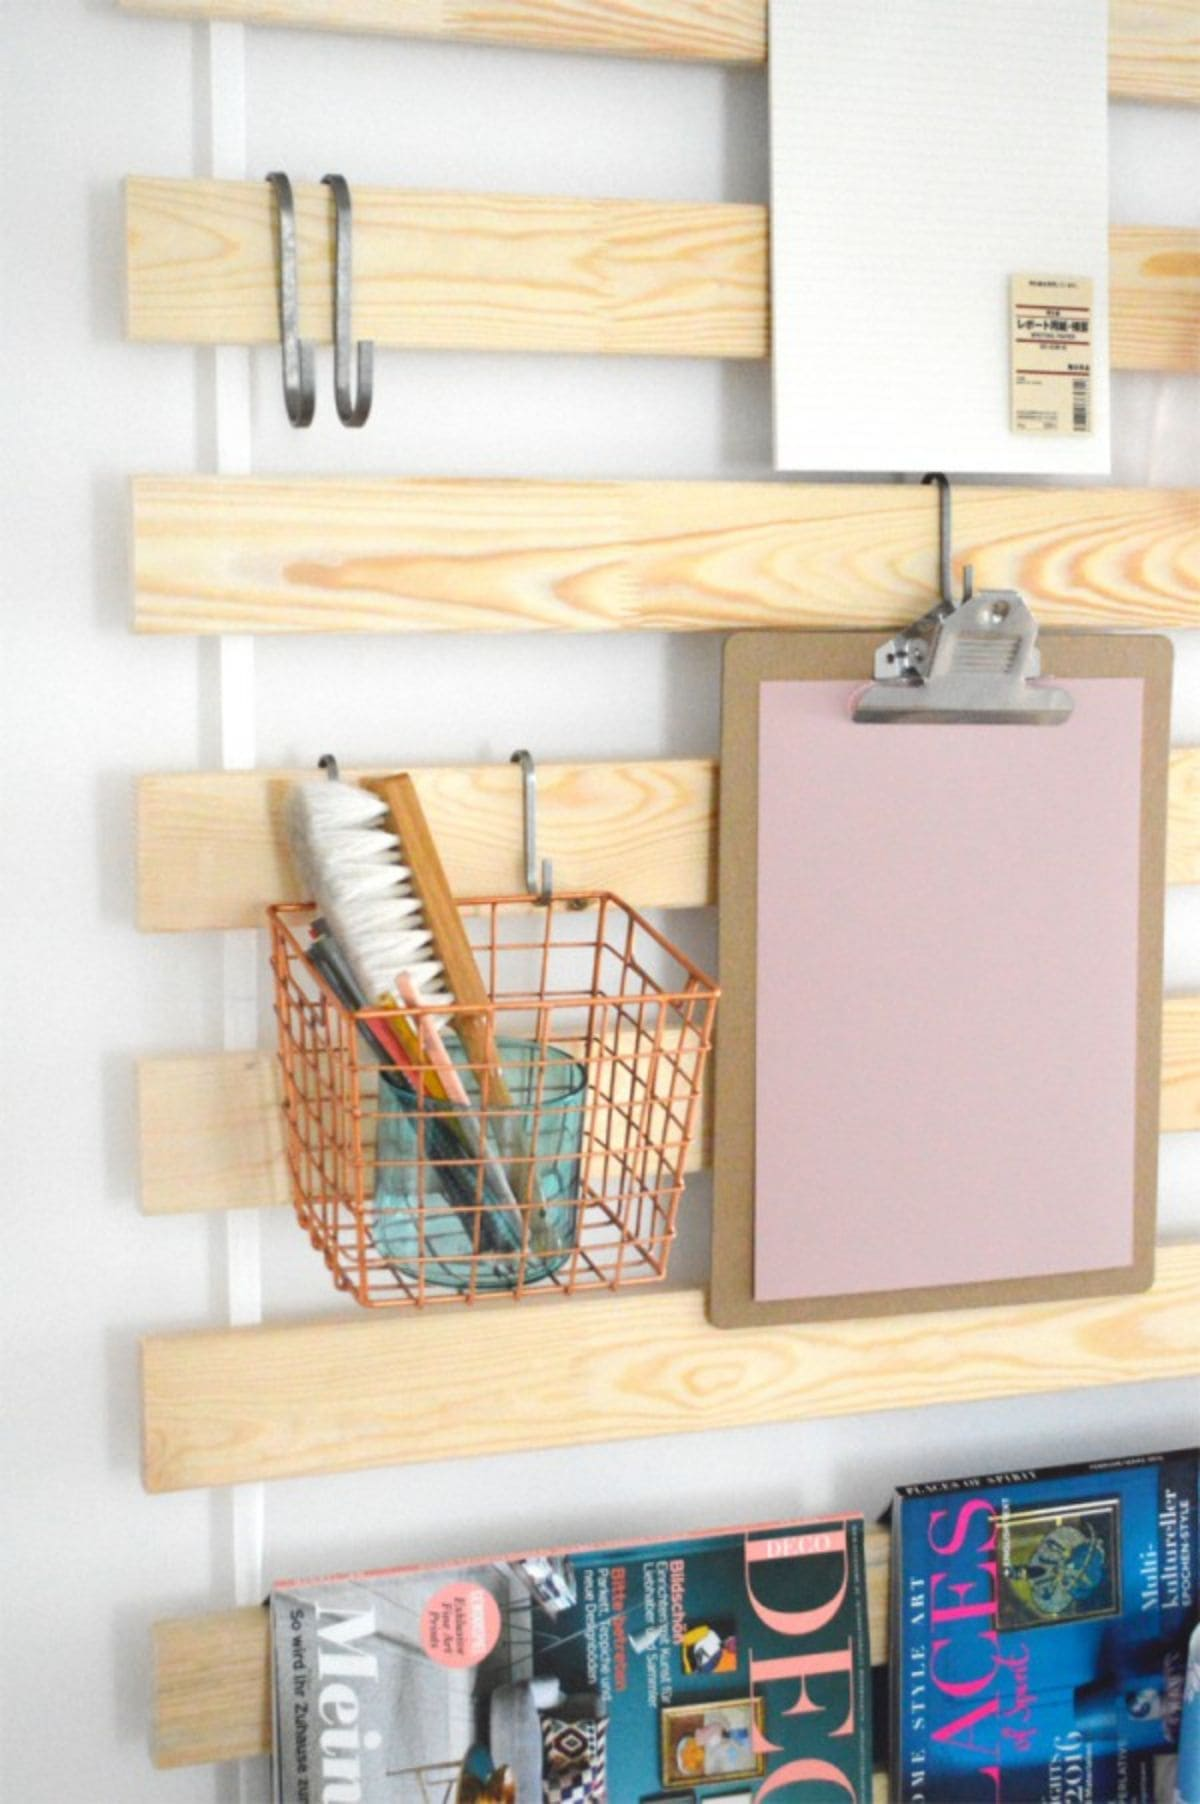 A section of a wooden slatted headboard. Hanging from the slats are hooks. Hanging fro the hooks is a basket with stationery in it and a clipboard